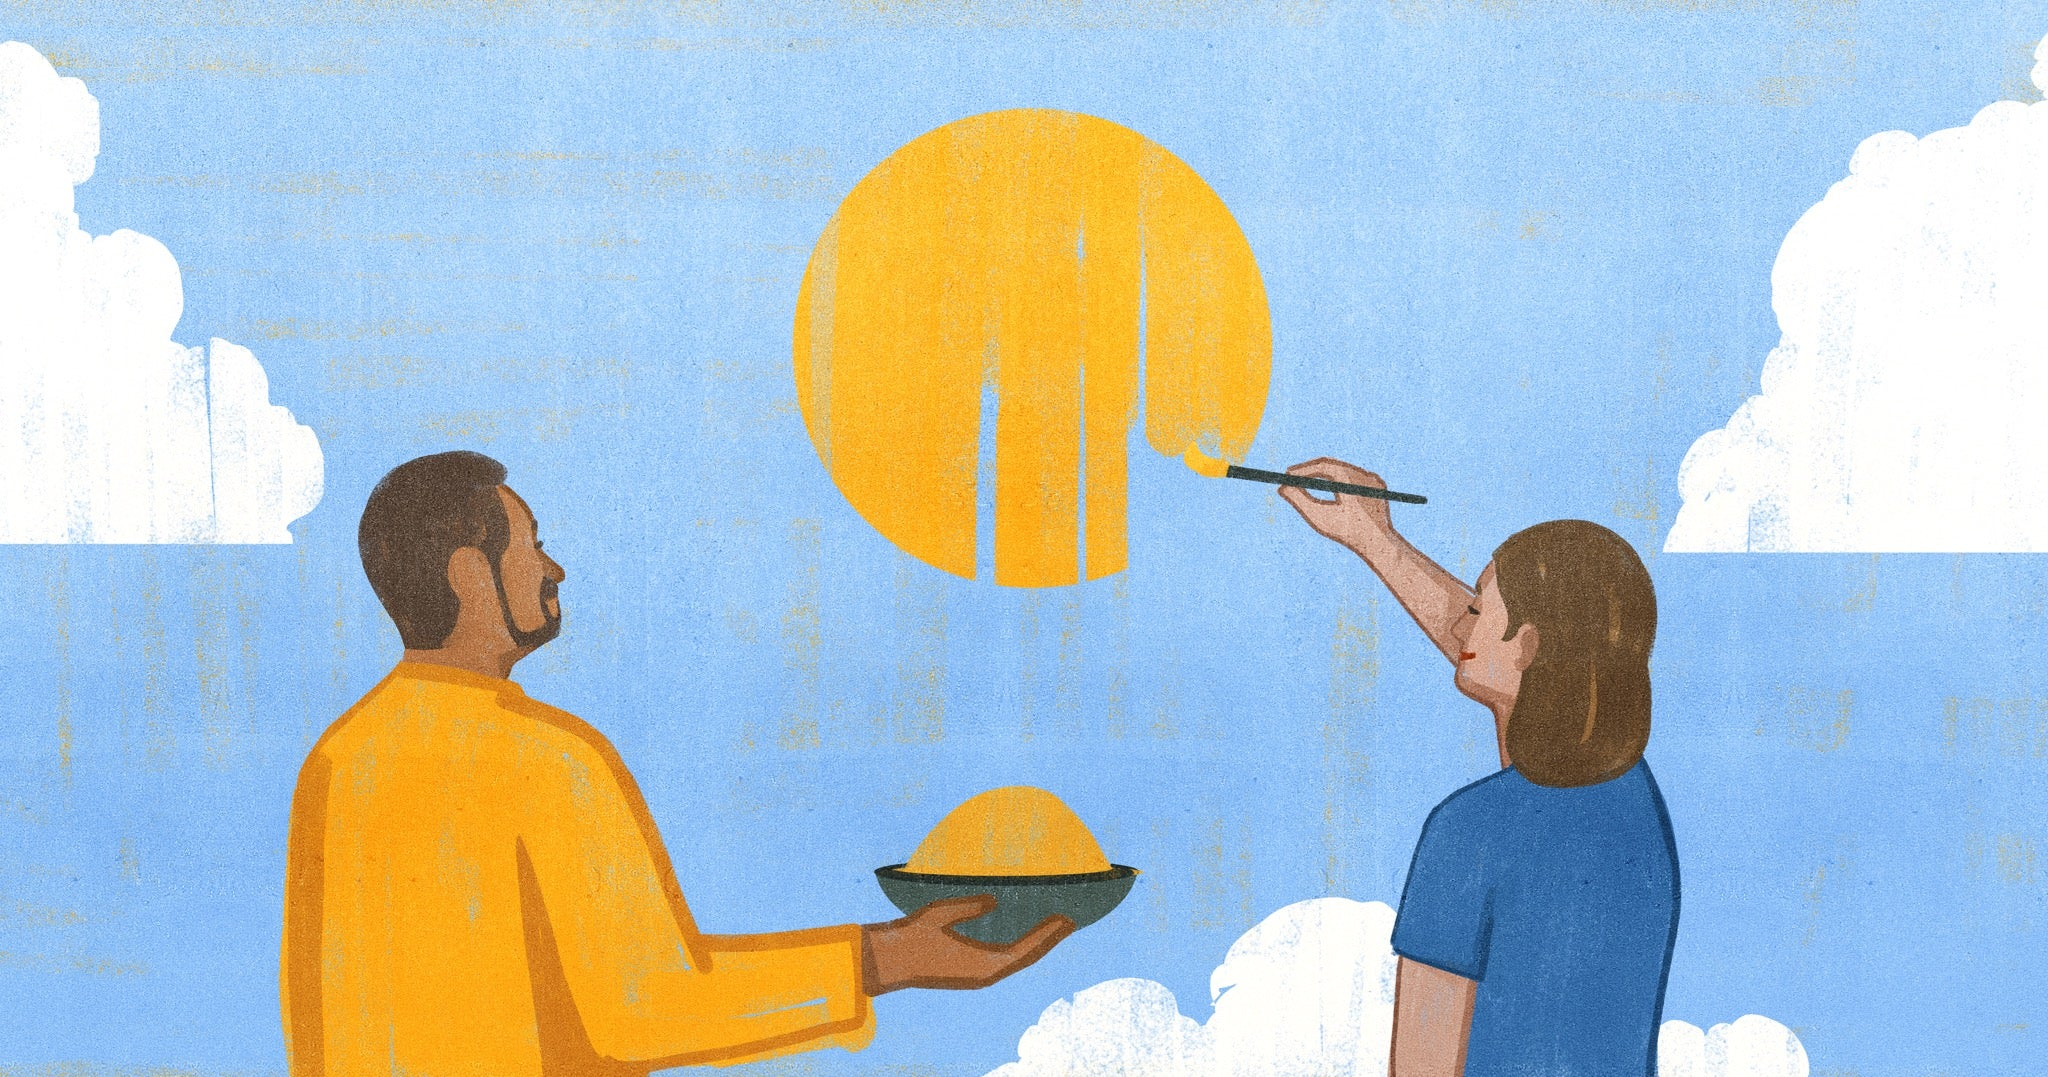 Illustration of Jaz Fenton and Jamil Bhuya painting a sun together using turmeric as a natural paint.